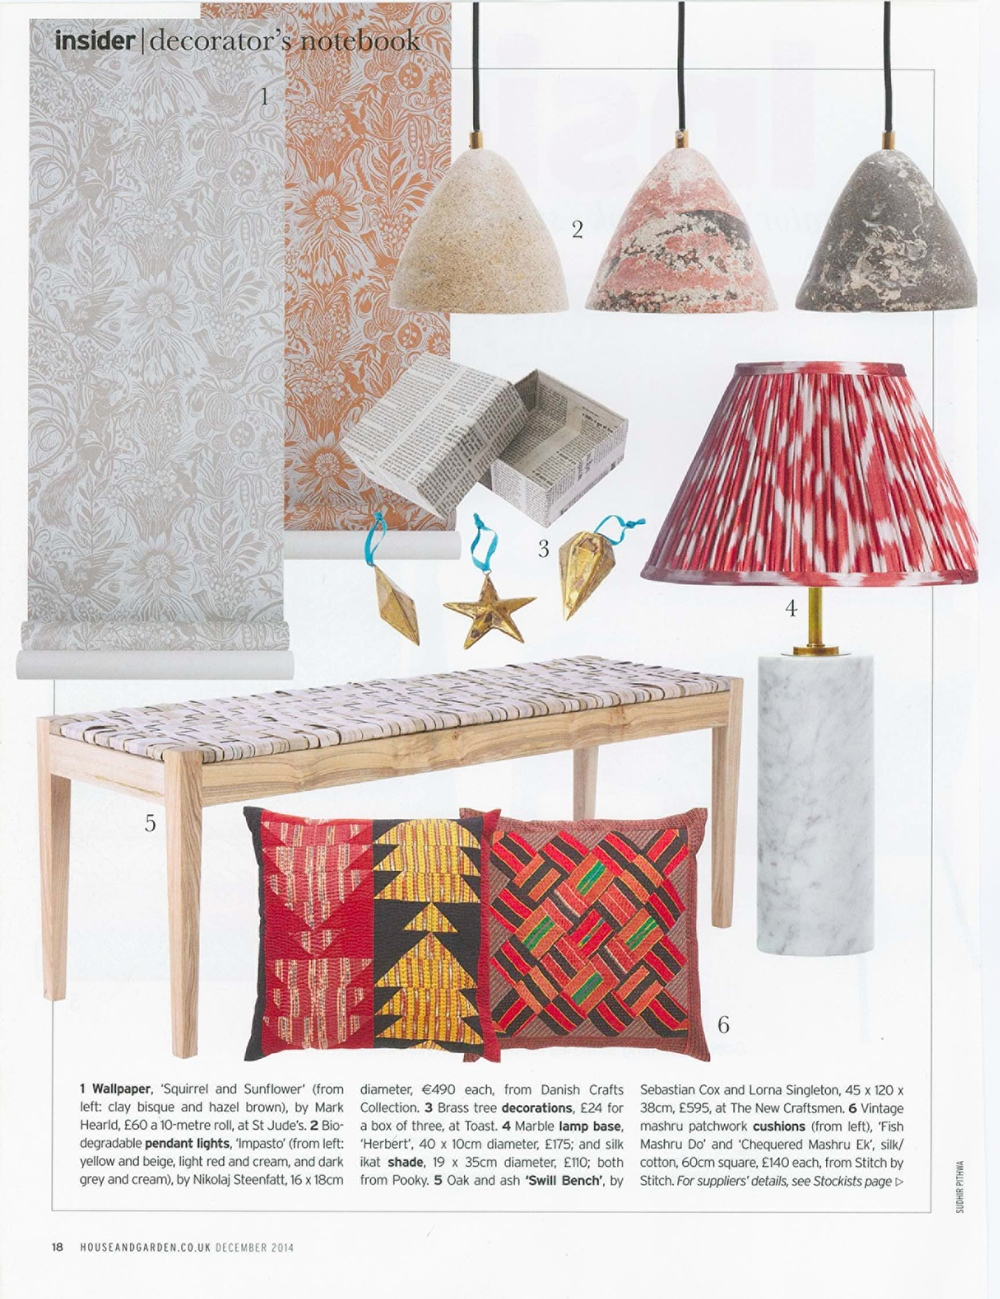 """House and Garden, Dec 2014, our Pièce UniqueMashru cushions featured in """"decorator's notebook"""""""